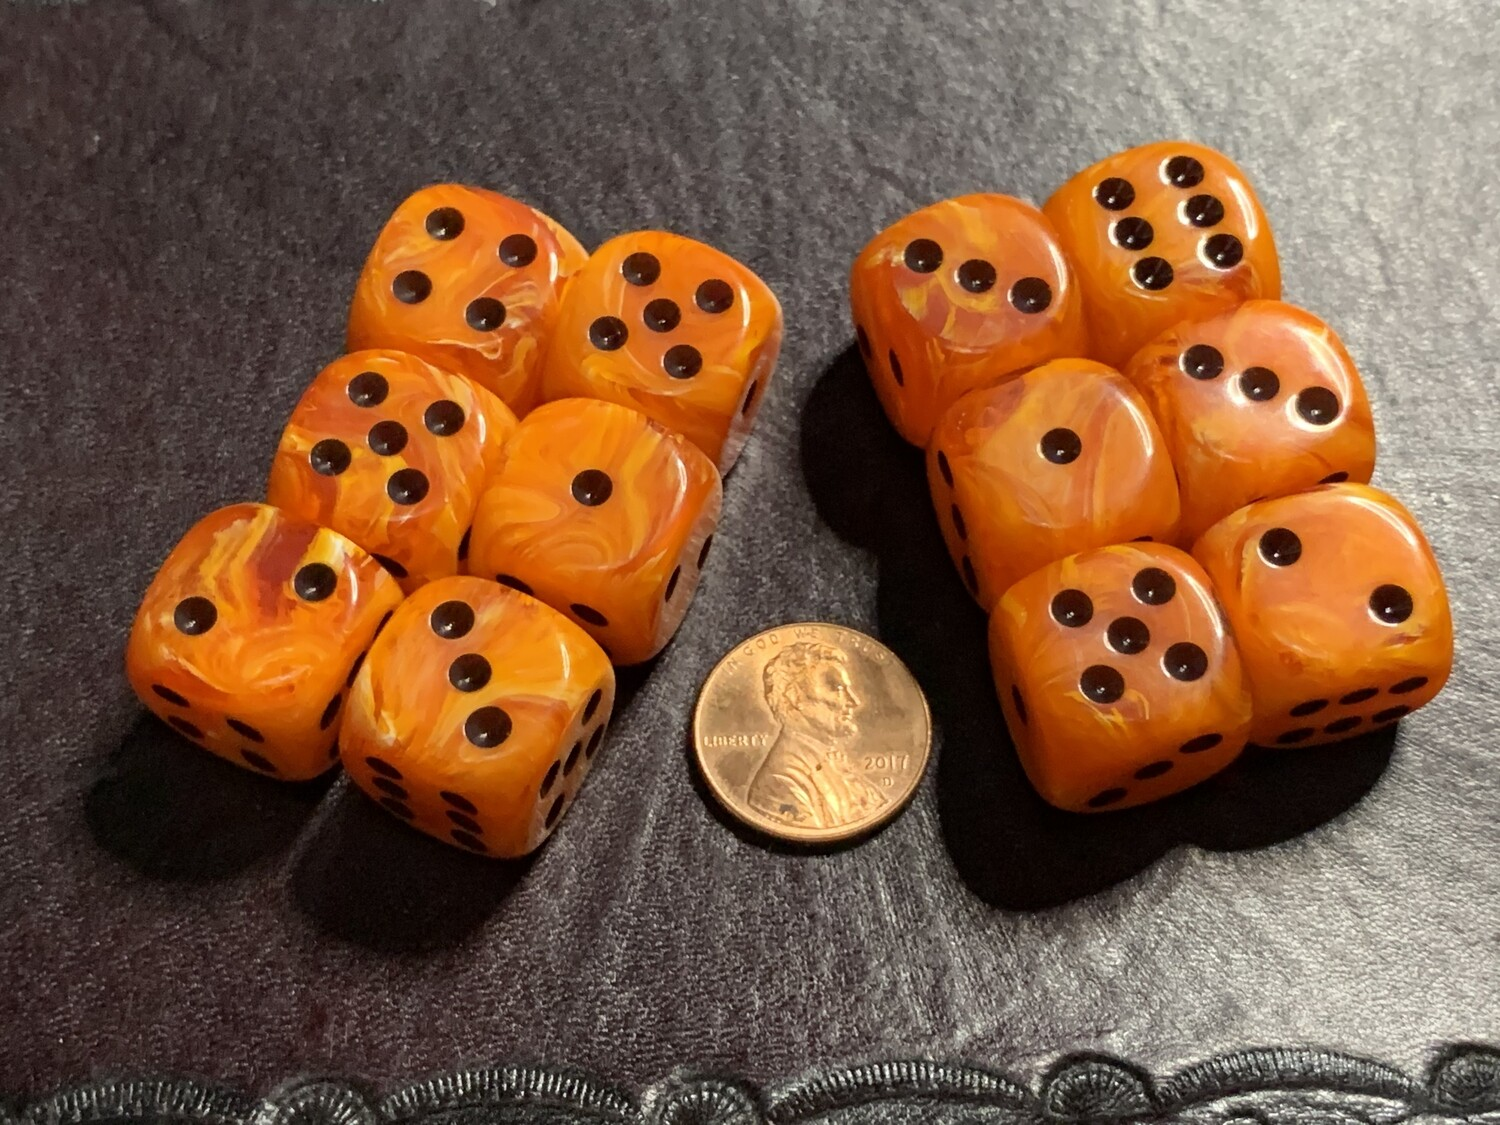 Chessex 16mm 12D6 Block - Vortex Orange with Black Dice Set Tabletop Gaming RPG